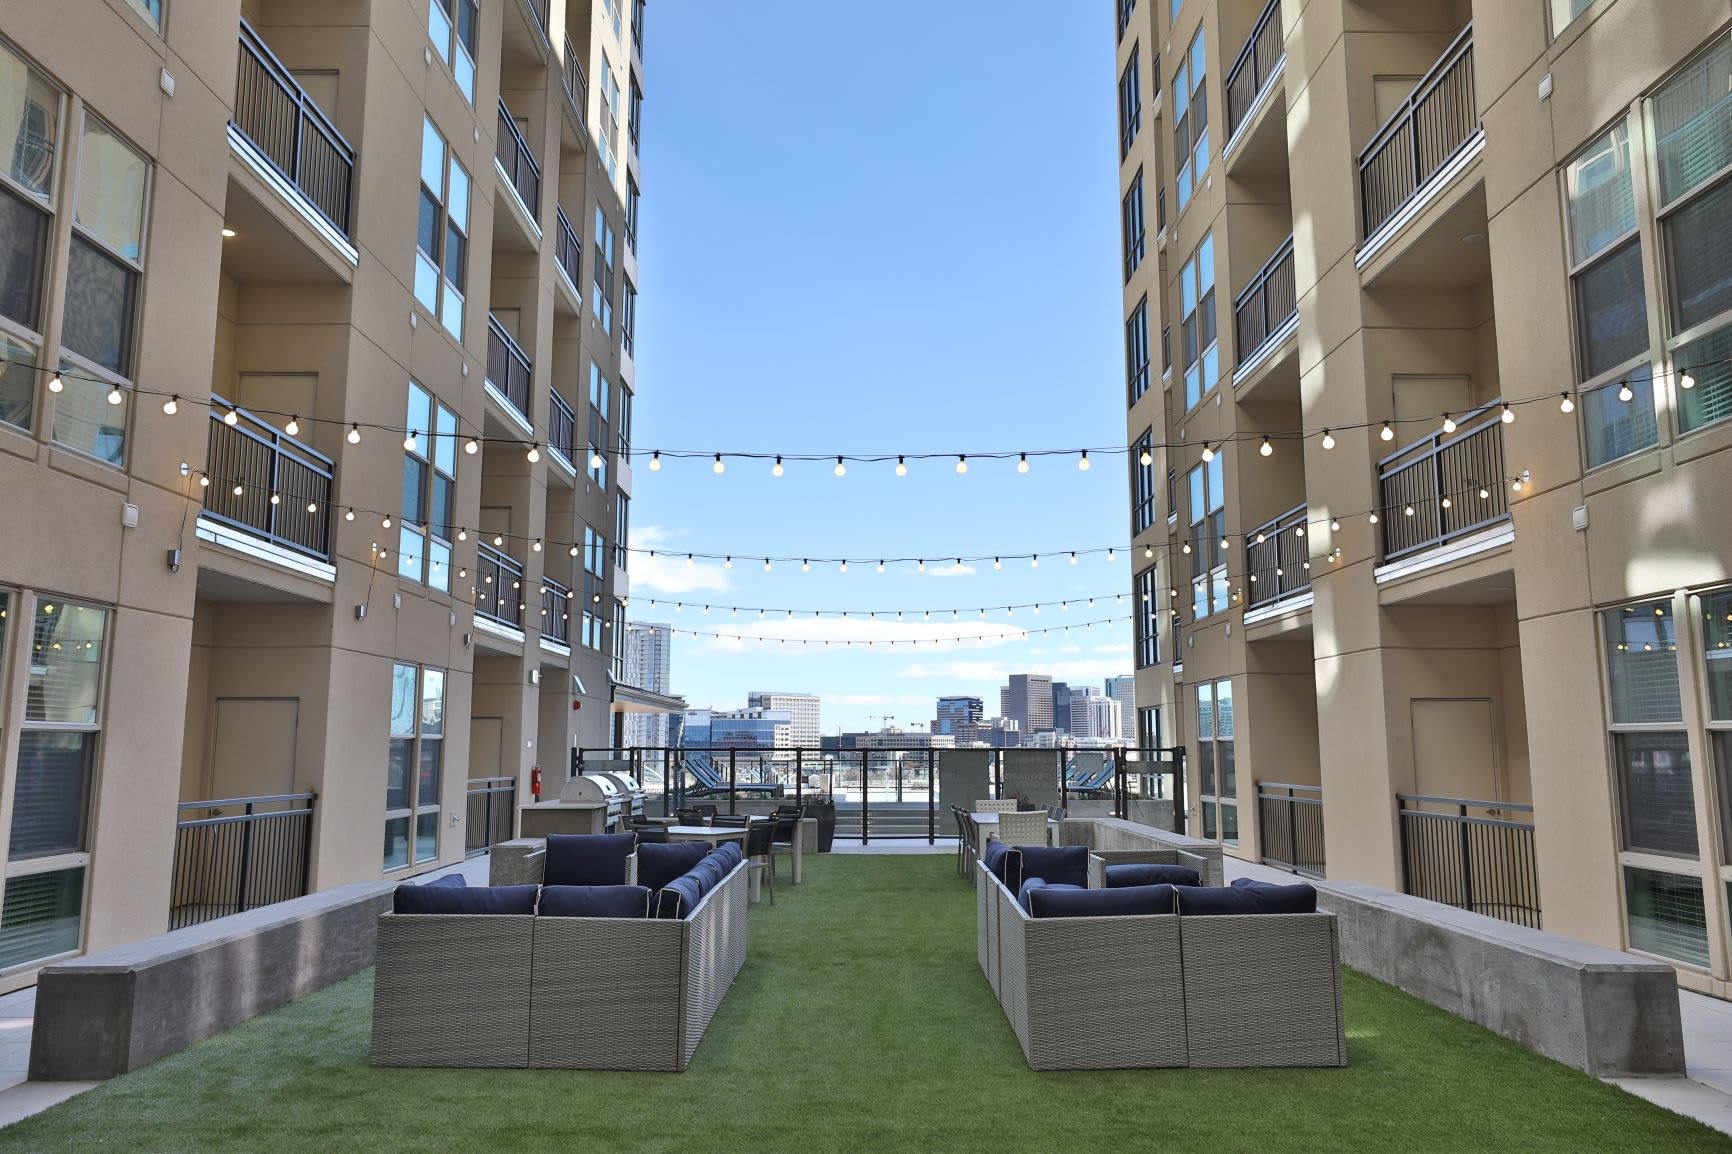 Outdoor grilling area at The Alcott in Downtown Denver, Colorado